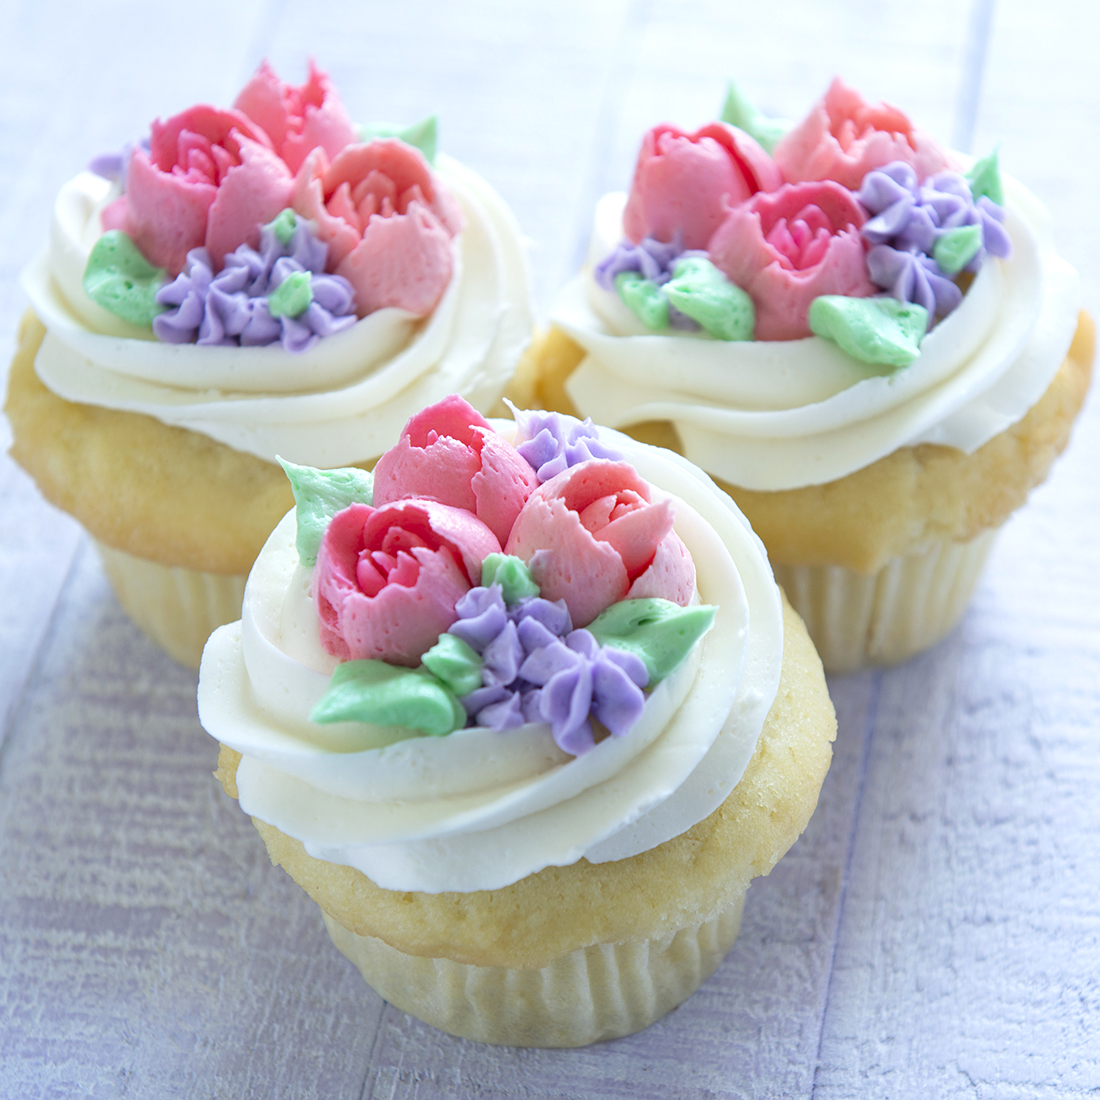 Garden Flowers - Buttercream flowers on the top of each cupcake: $4.00 each, minimum of one dozen per flavor and design.